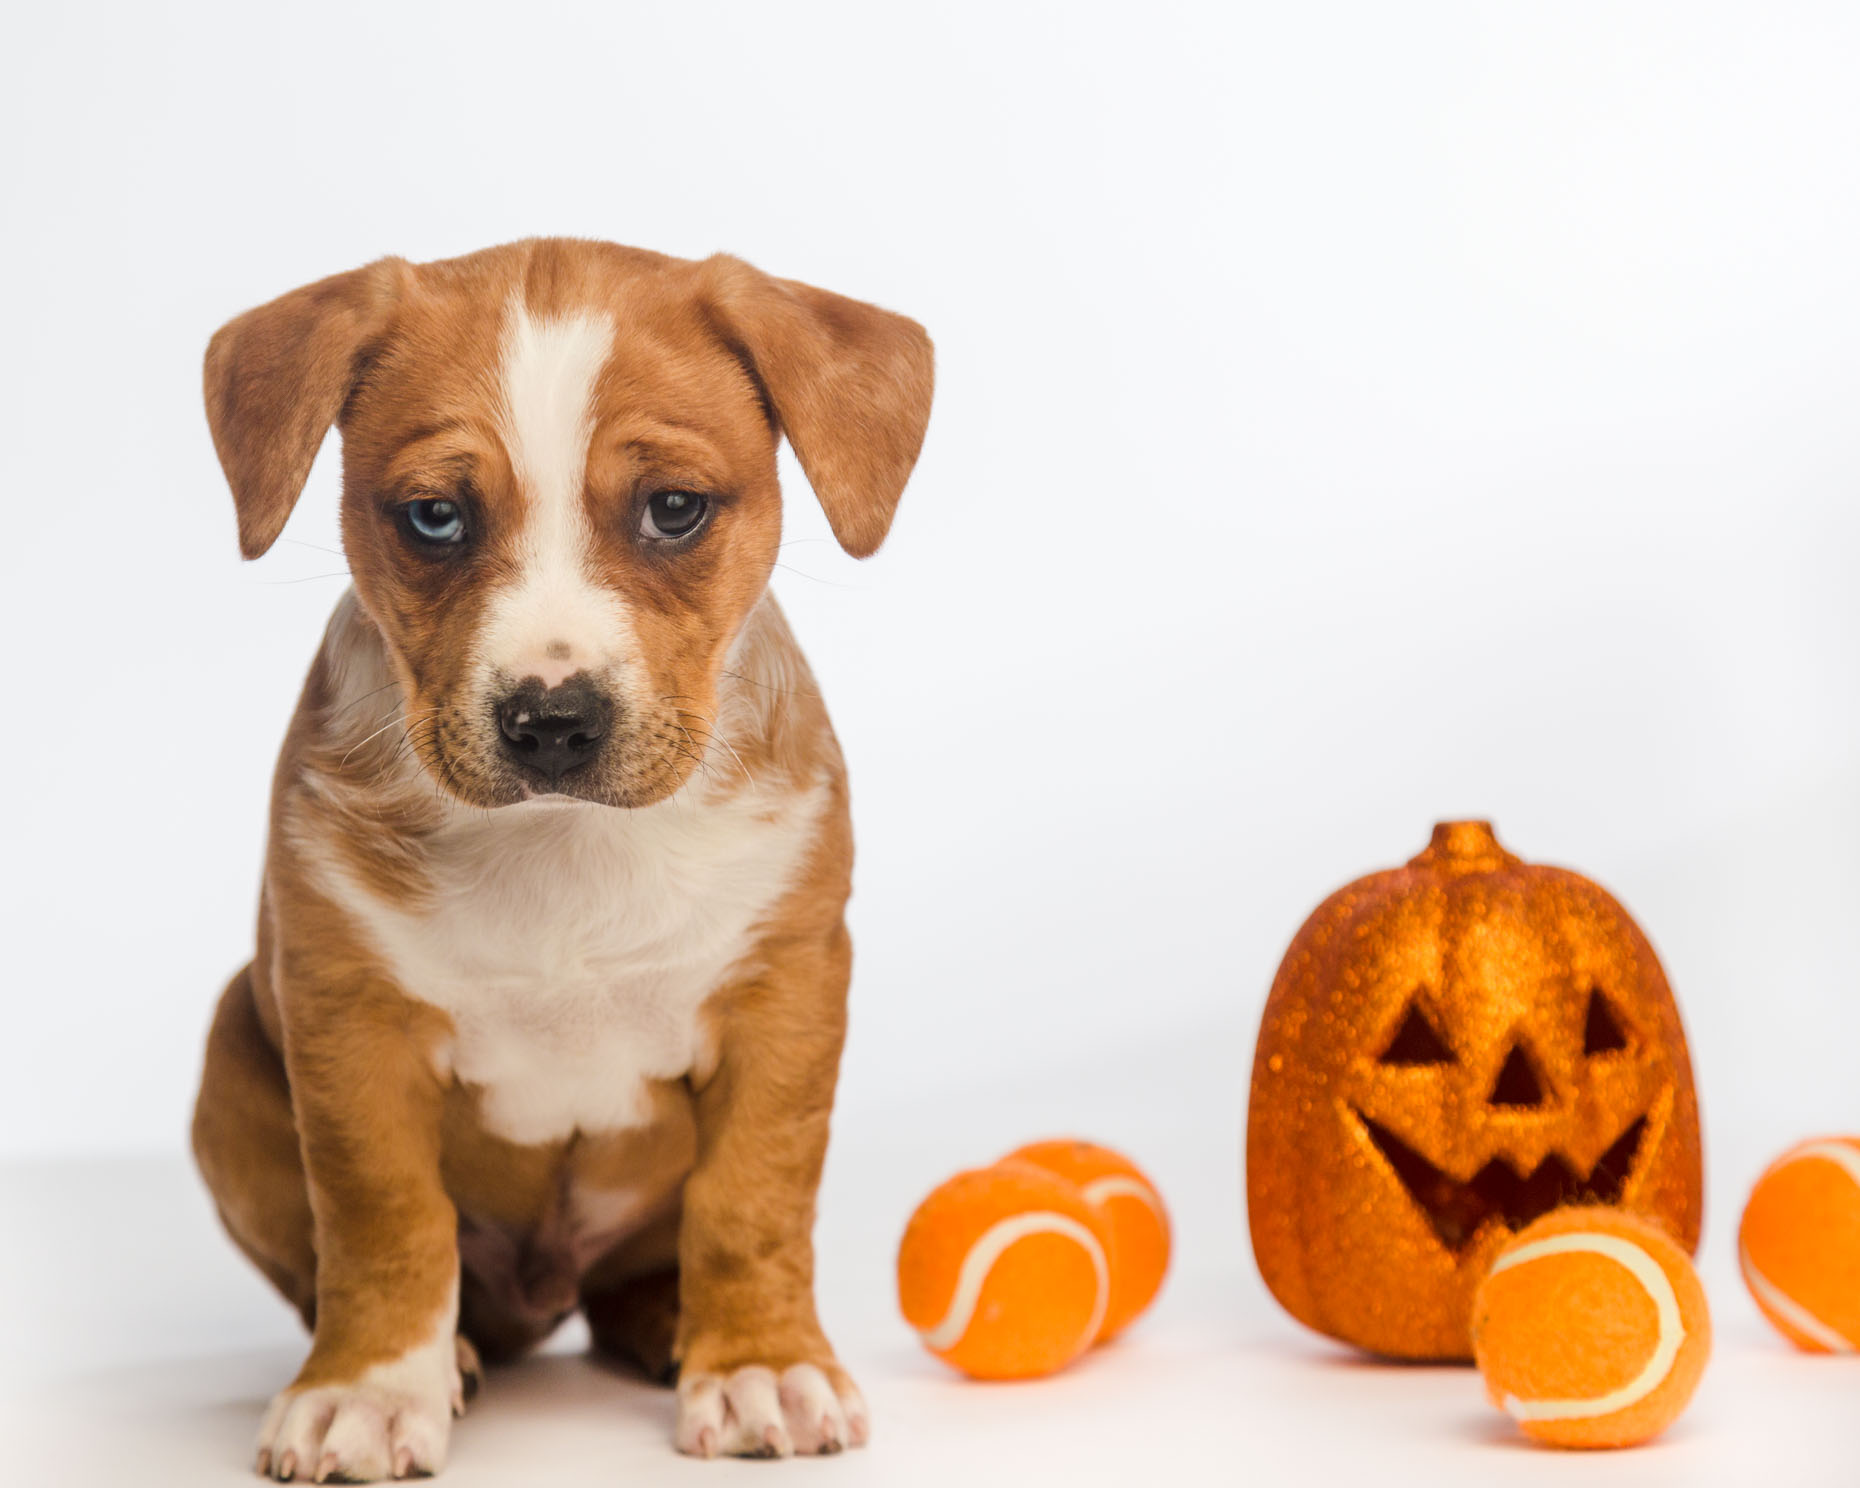 Animal Advertising Photography | Puppy with Jack-O-Lantern by Mark Rogers